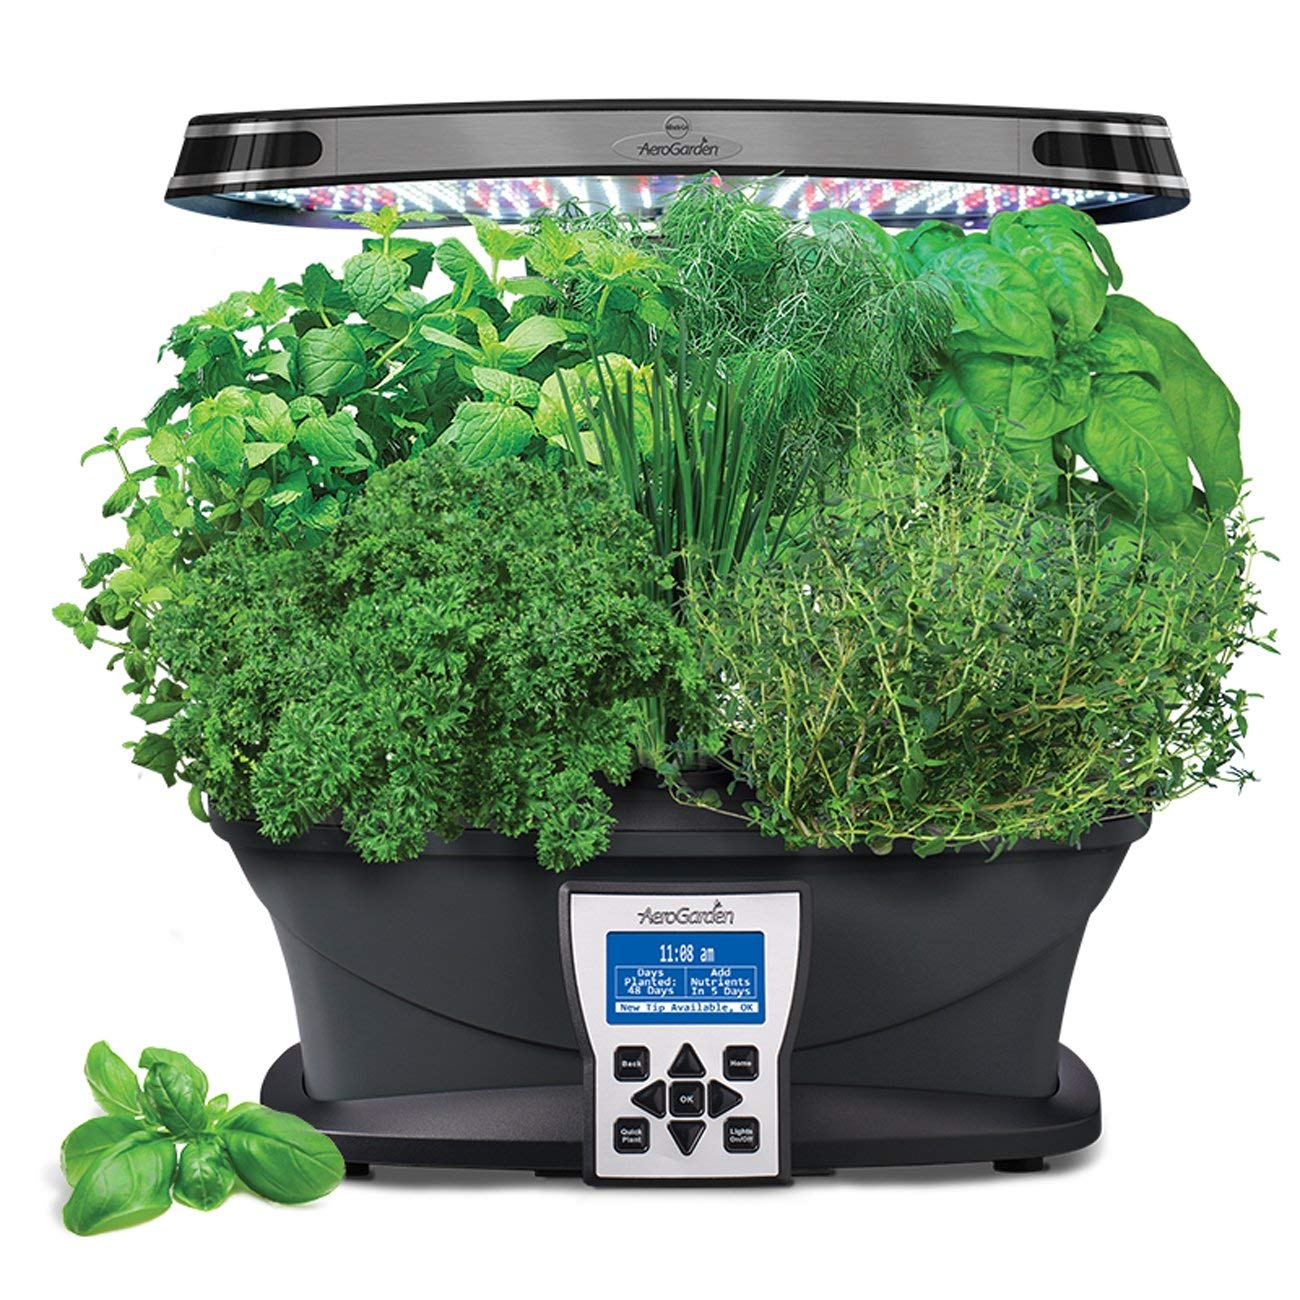 $217.00 AeroGarden  Garden year-round. Grow fresh herbs, vegetables, salad greens, flowers and more in this smart countertop garden.